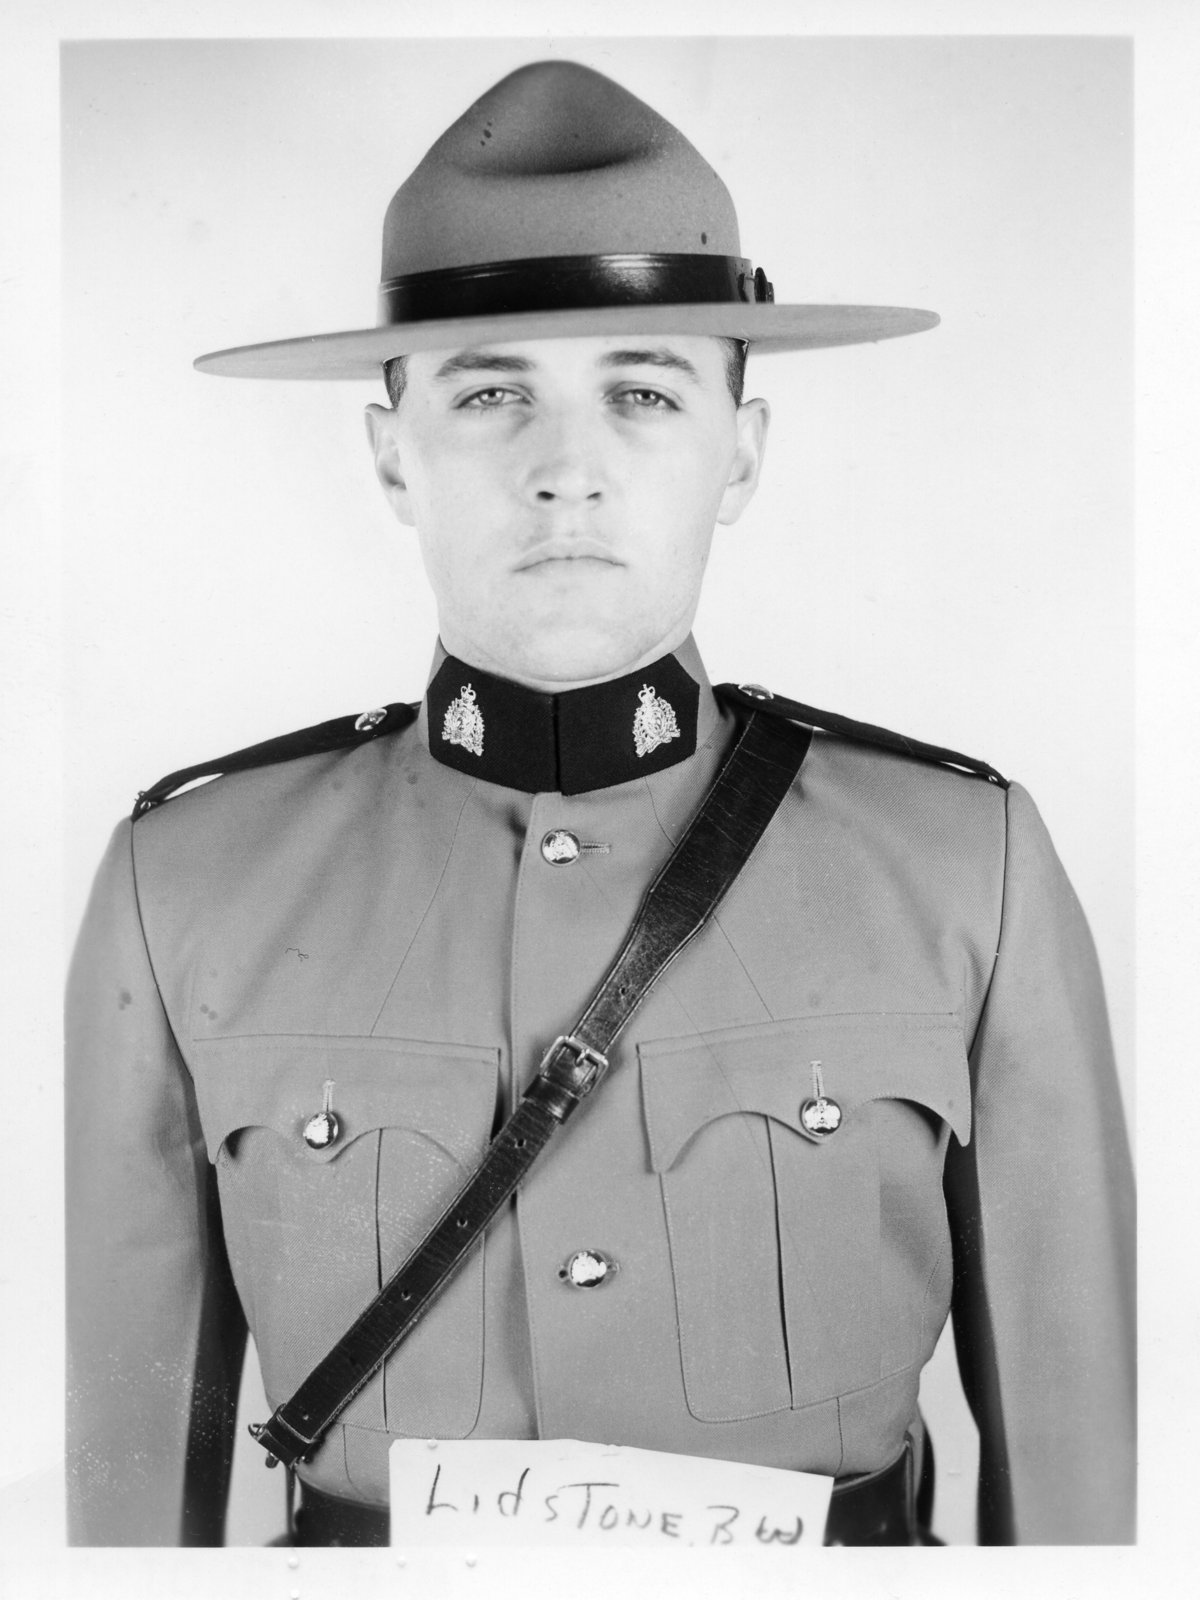 Corporal Barry Warren Lidstone – © Her Majesty the Queen in Right of Canada as represented by the Royal Canadian Mounted Police